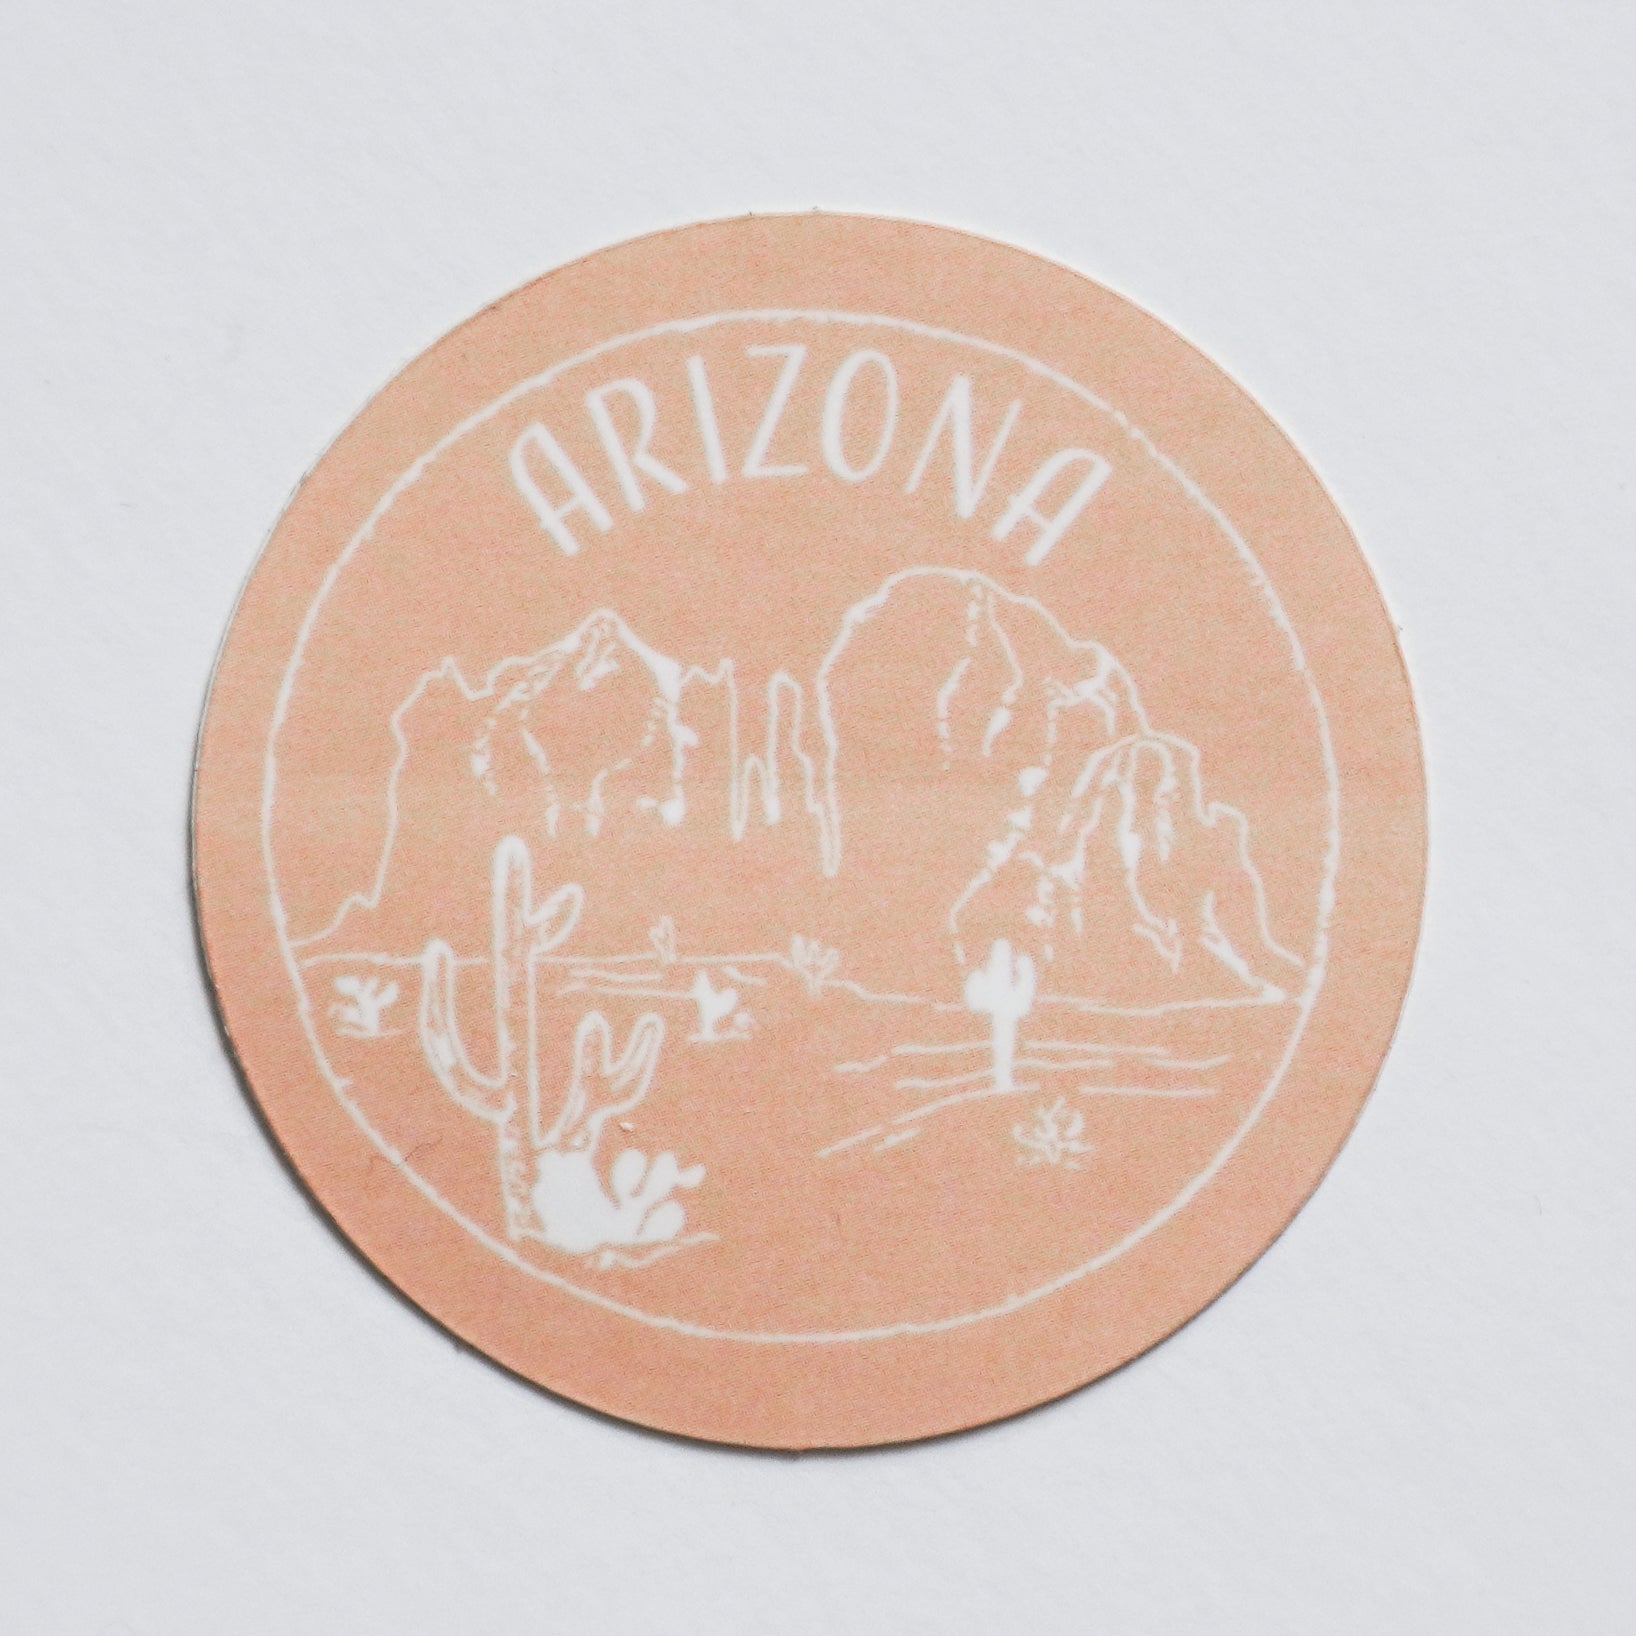 Arizona Sticker - Shop Back Home